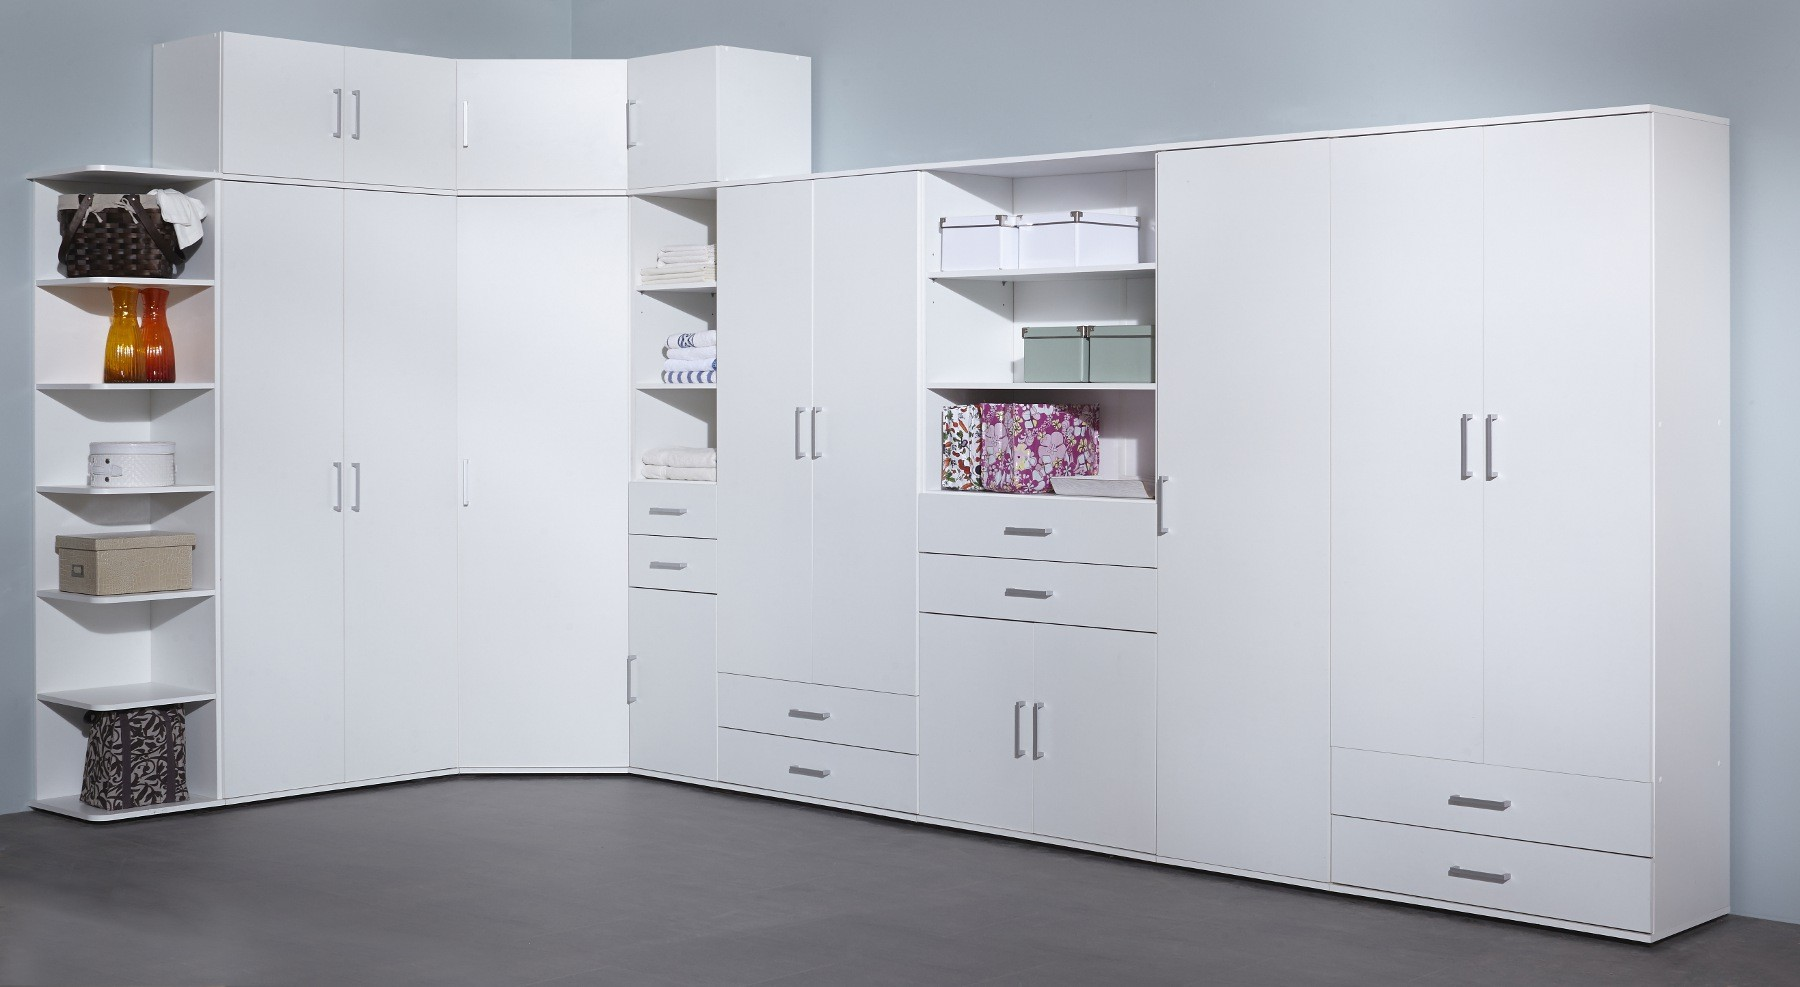 regalschrank ronny aufbewahrungsschrank mit t r schubladen f chern 40 cm weiss ebay. Black Bedroom Furniture Sets. Home Design Ideas